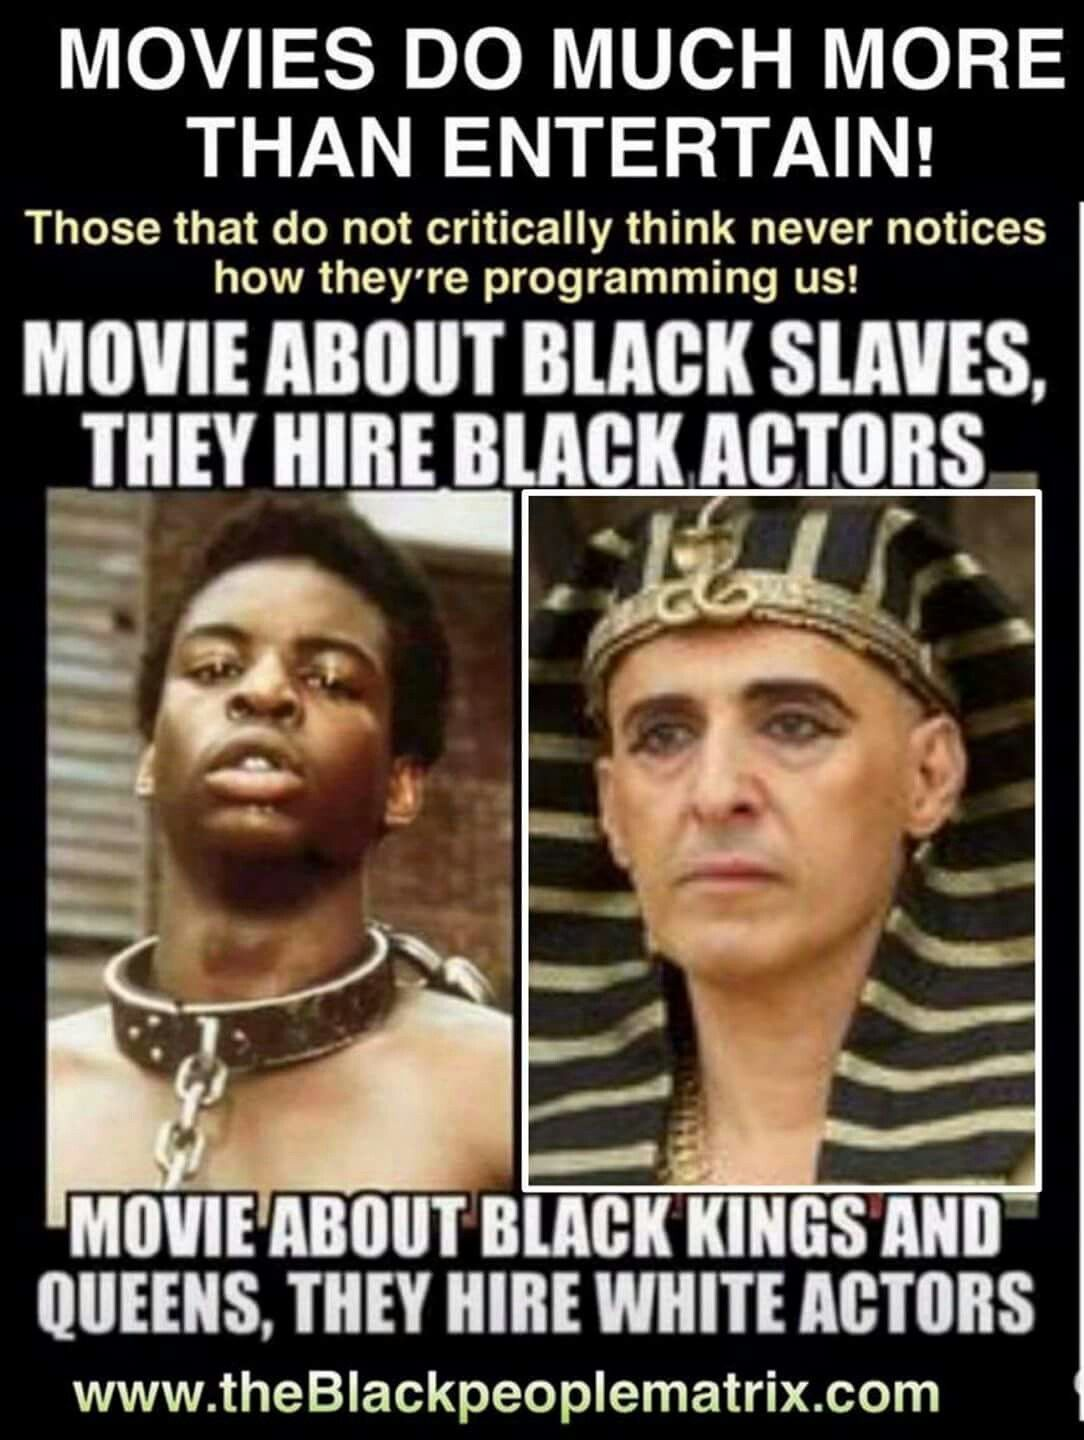 Pin By Lynne Hubbard On General Quotes Black History Facts Psychological Warfare Thought Provoking Download past episodes or subscribe to future episodes of uncultured swine by uncultured swine for free. pinterest